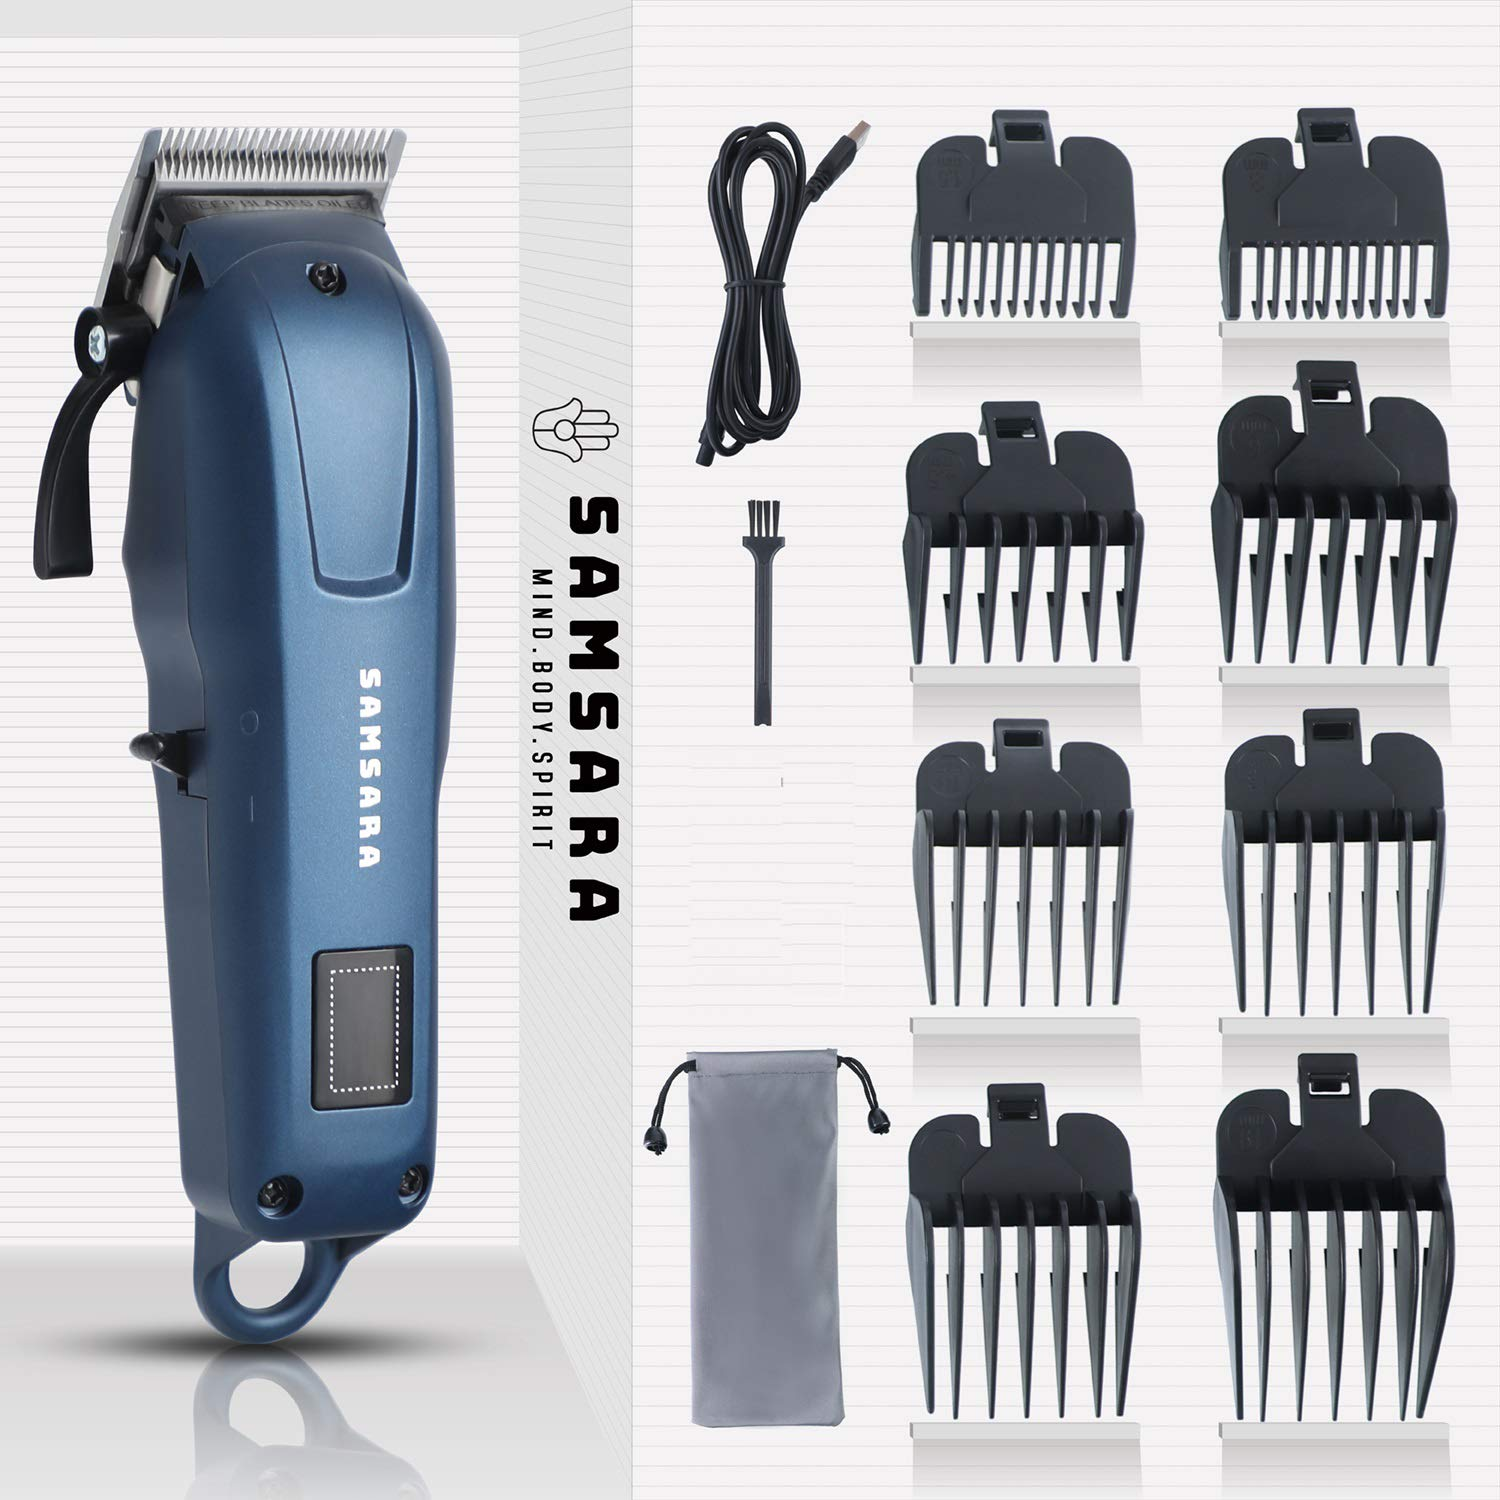 SAMSARA Classic Hair Clippers for Men, Cordless Hair Clippers Set Professional Hair Trimmer Cuttings Kit with 8 Combs and Carrying Bag, Dark Blue